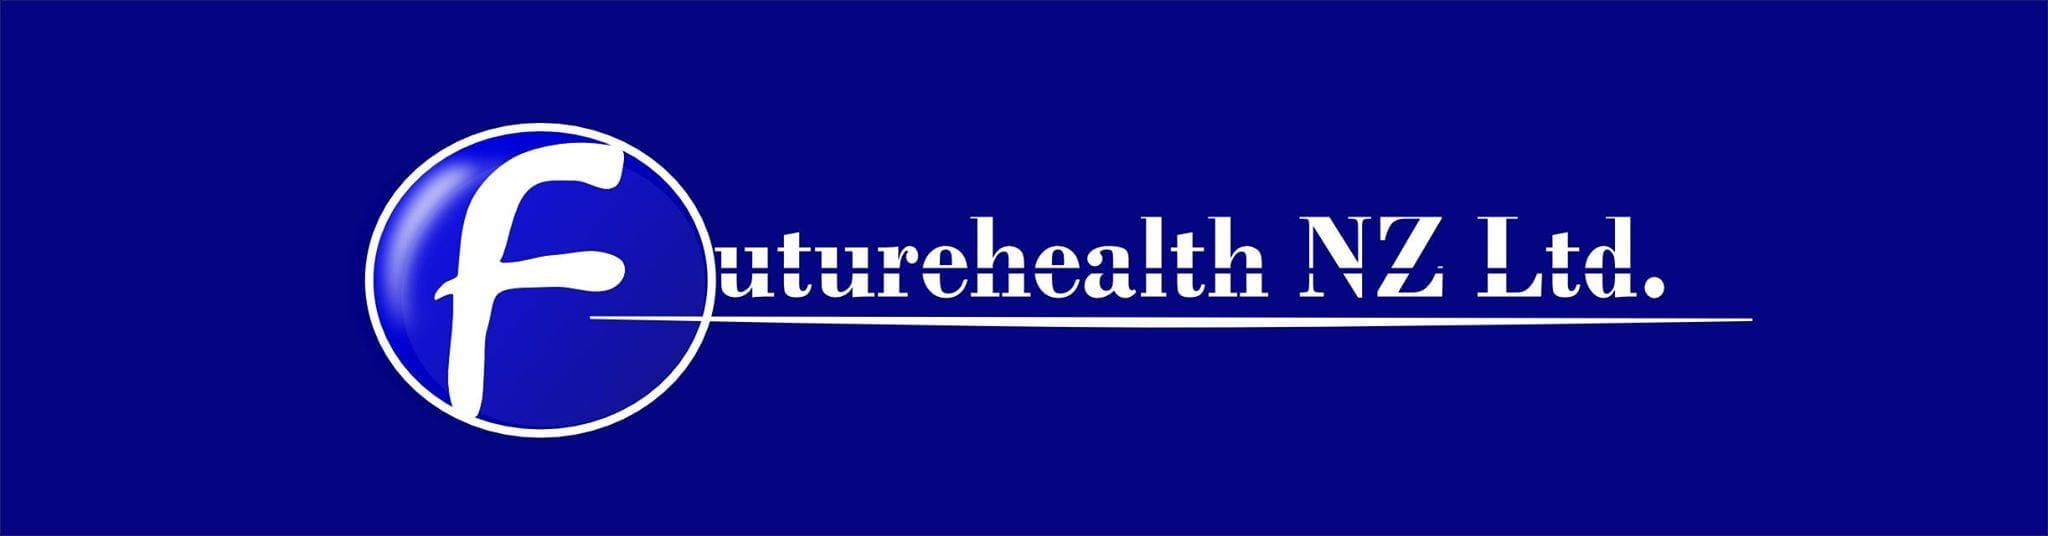 Future Health NZ